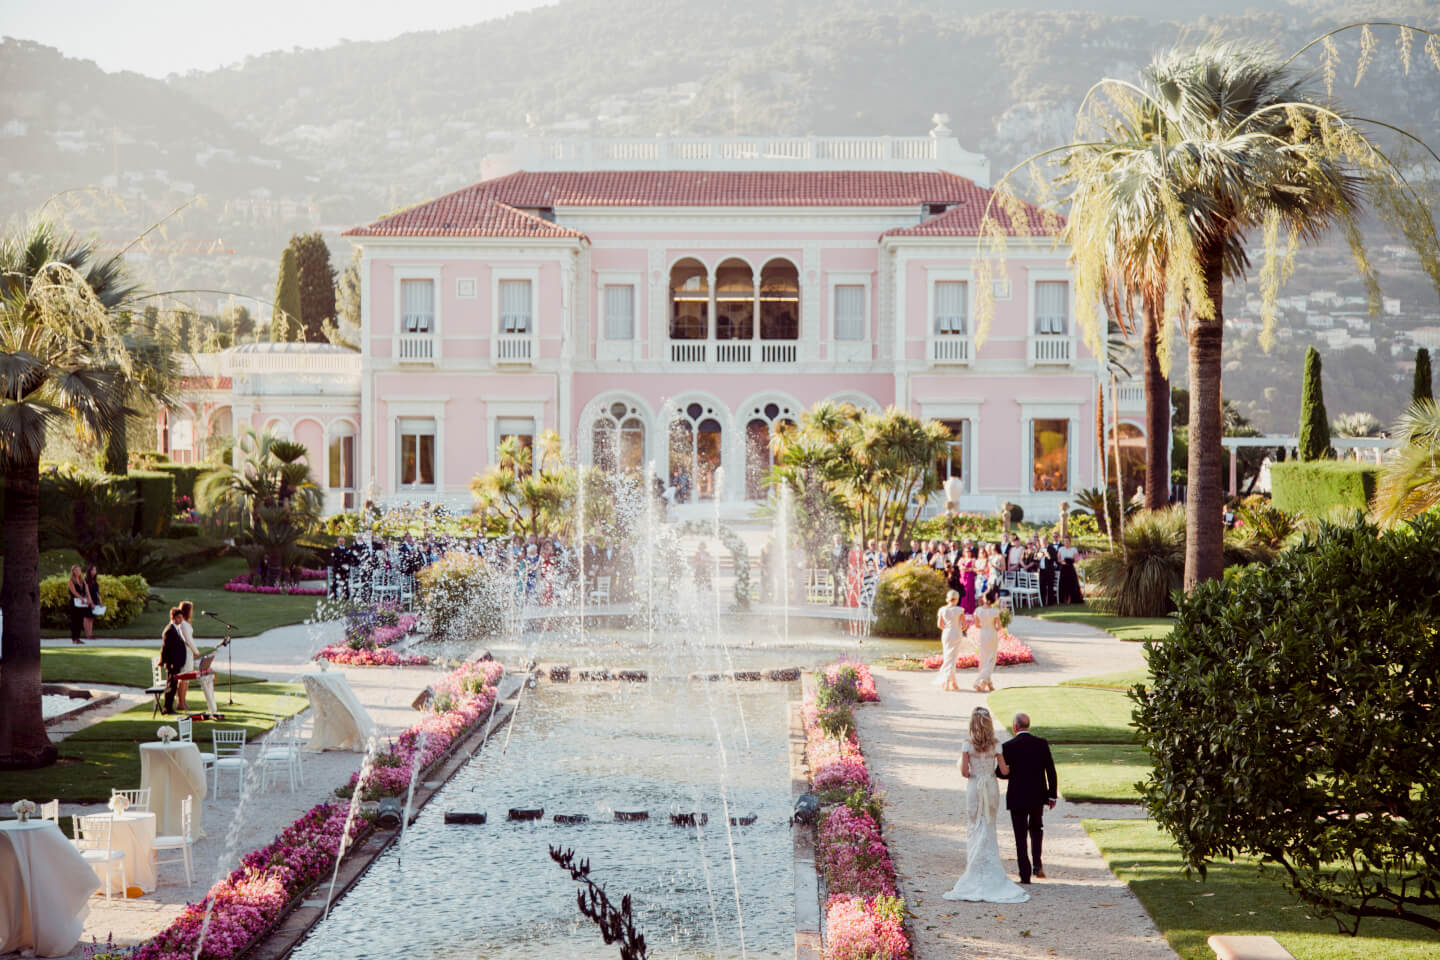 Lizzy and The Gentlemen Piano Duo @ Villa Ephrussi de Rothschild